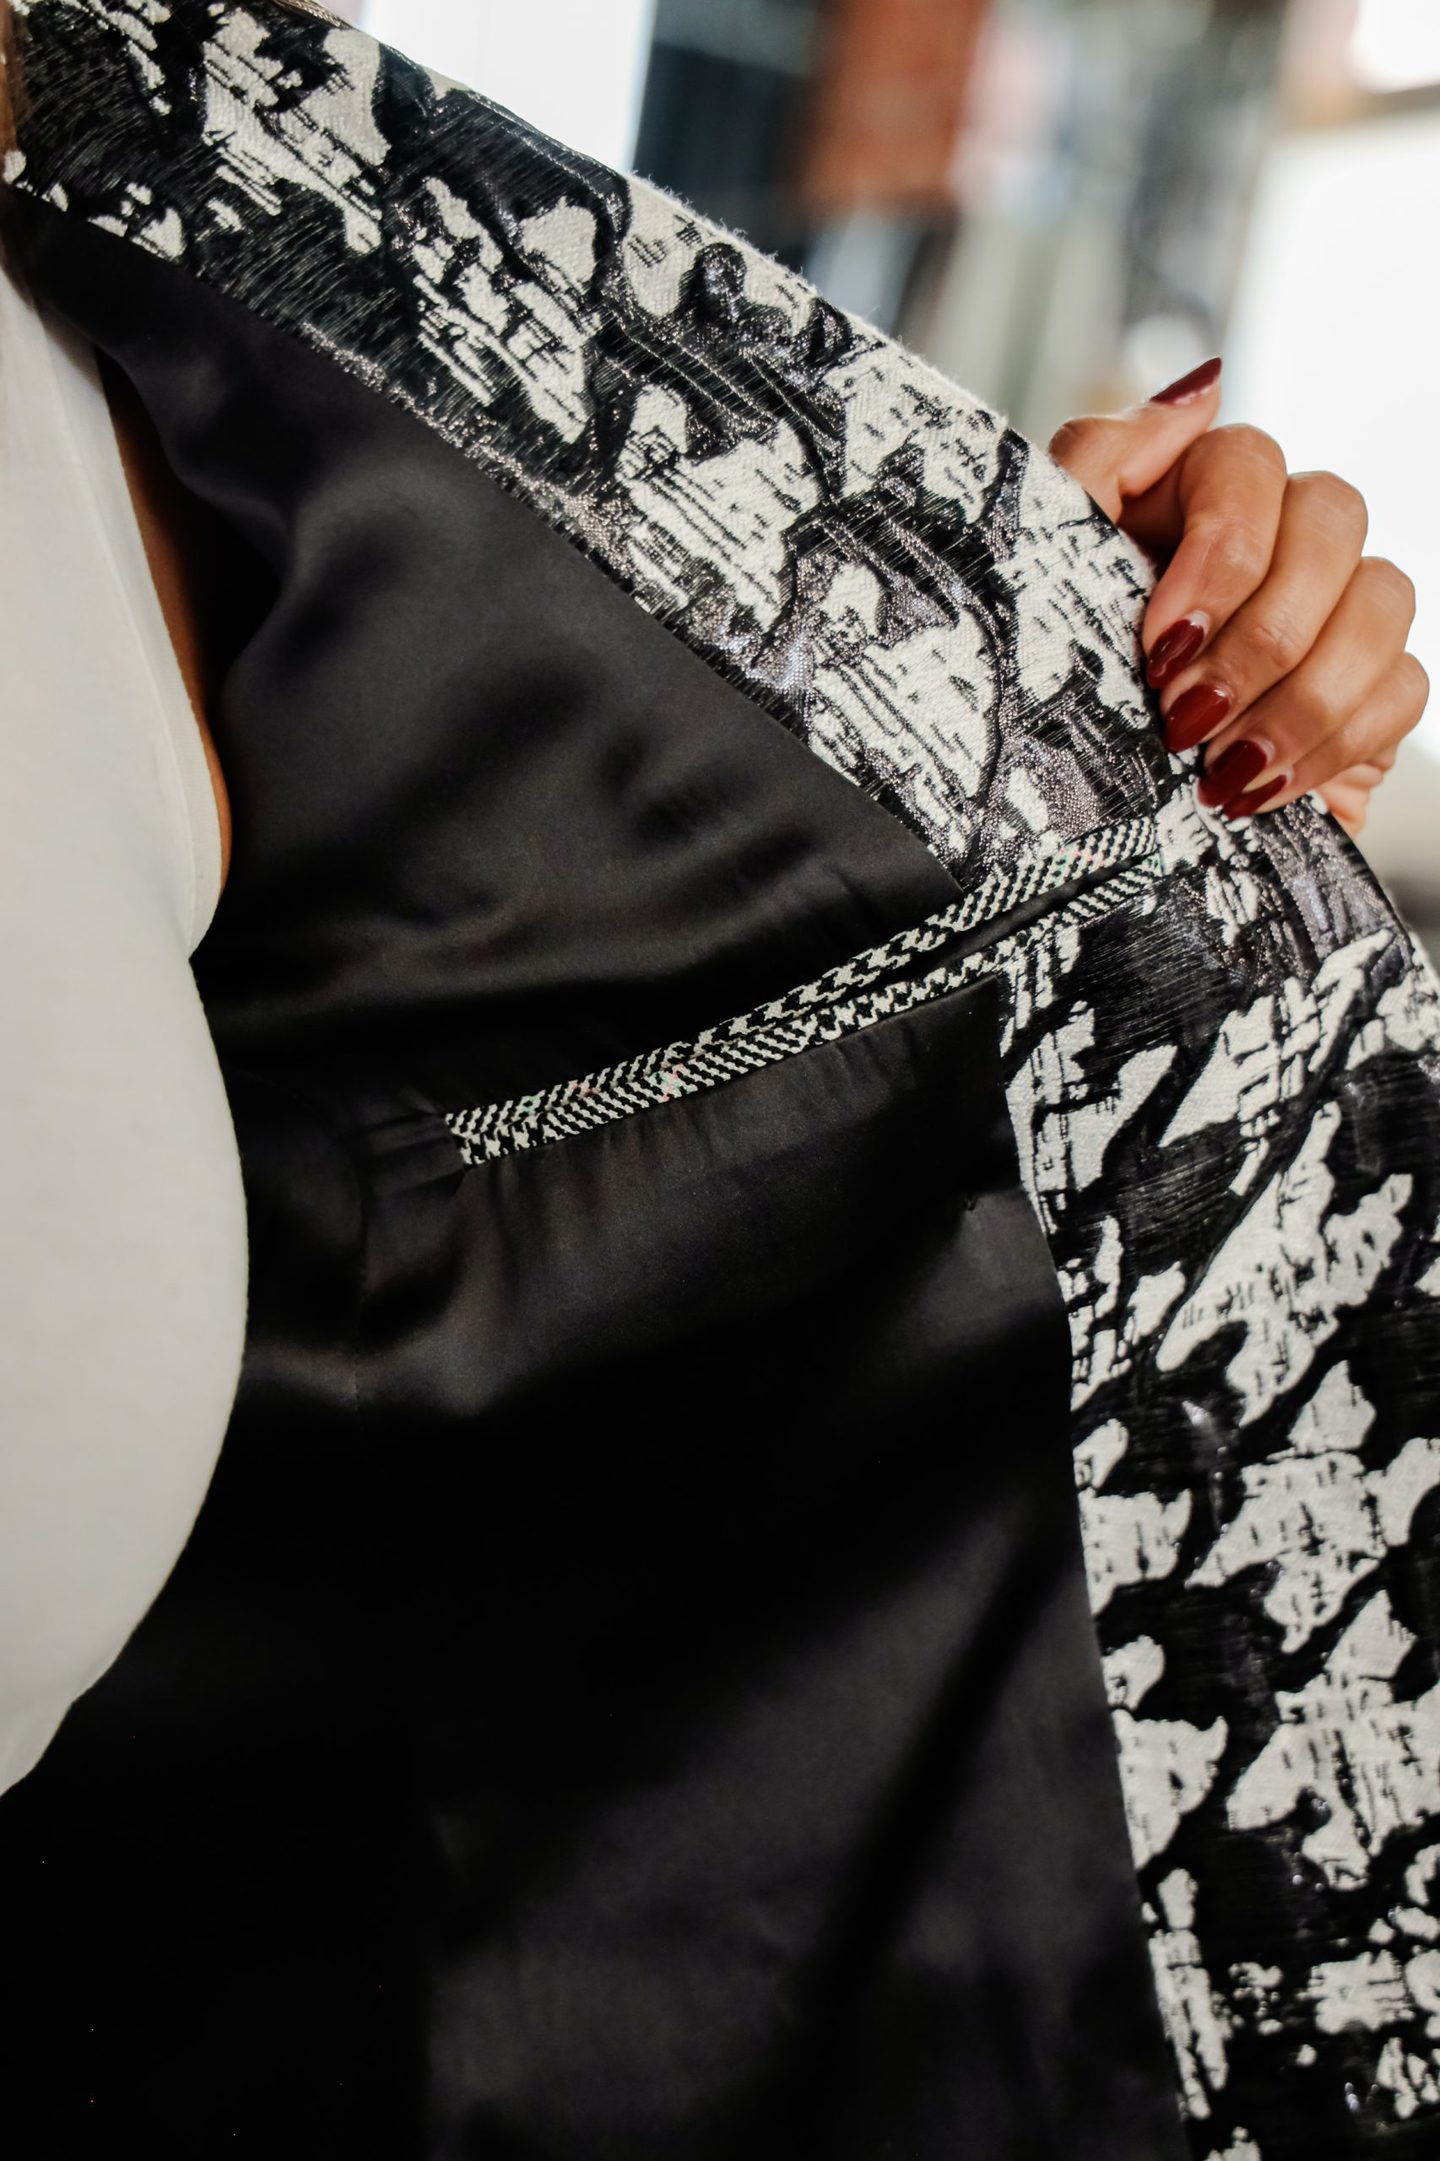 Fashion model exposing the inside lining of a houndstooth jacket created by a pattern maker